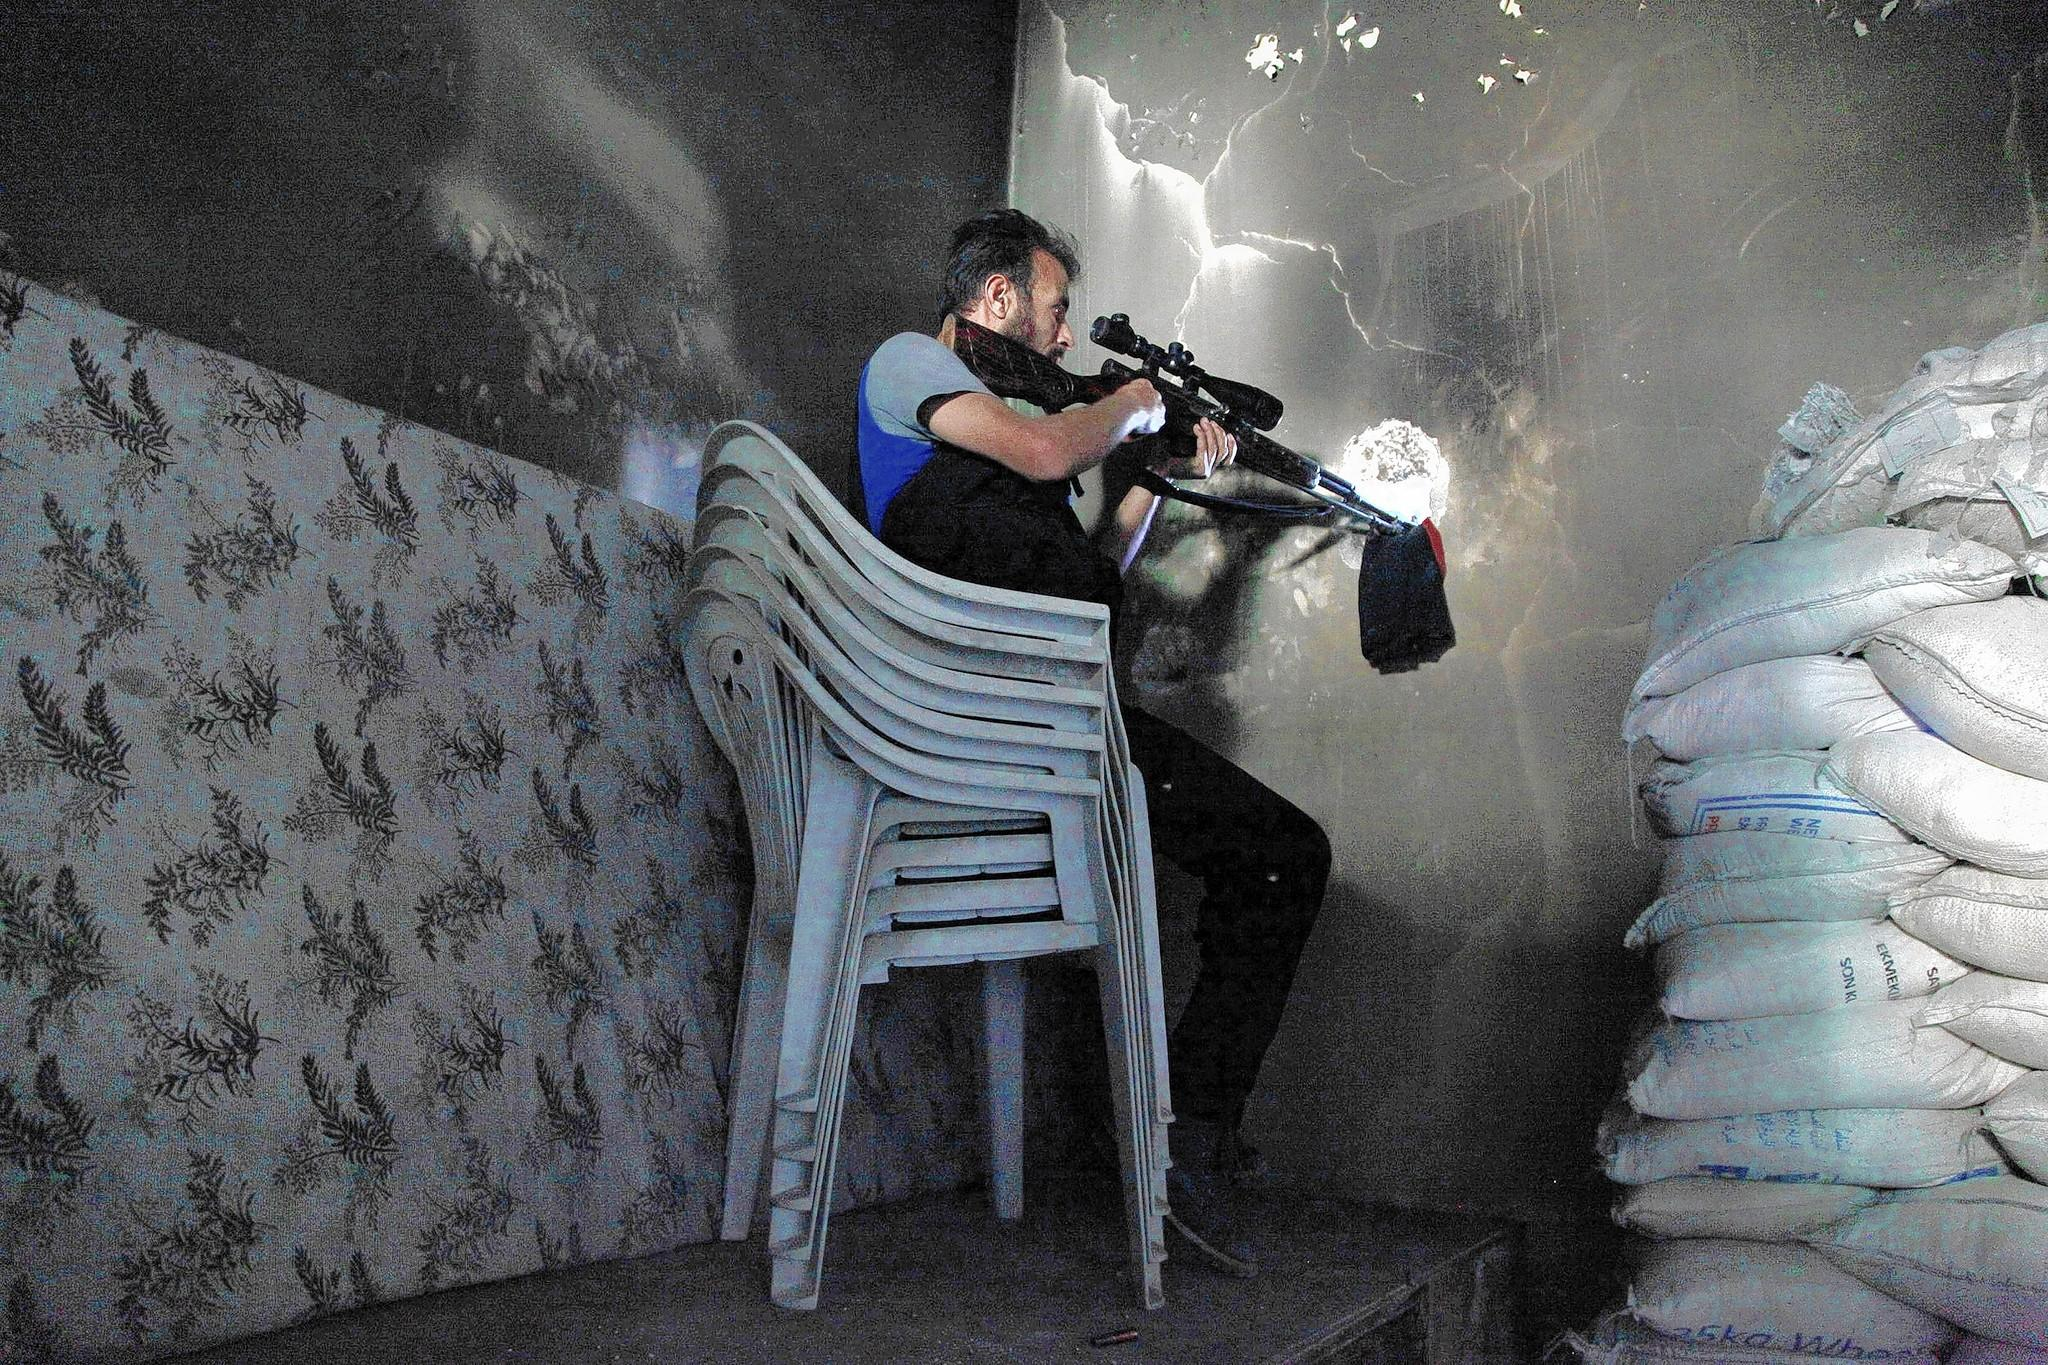 A Free Syrian Army sniper sits in a shooting position. Considered more moderate and secular than other rebel factions, the Free Syrian Army would be a part of an effort proposed by the Obama administration. The proposal includes a $500 million program to train and arm moderate Syrian rebels.